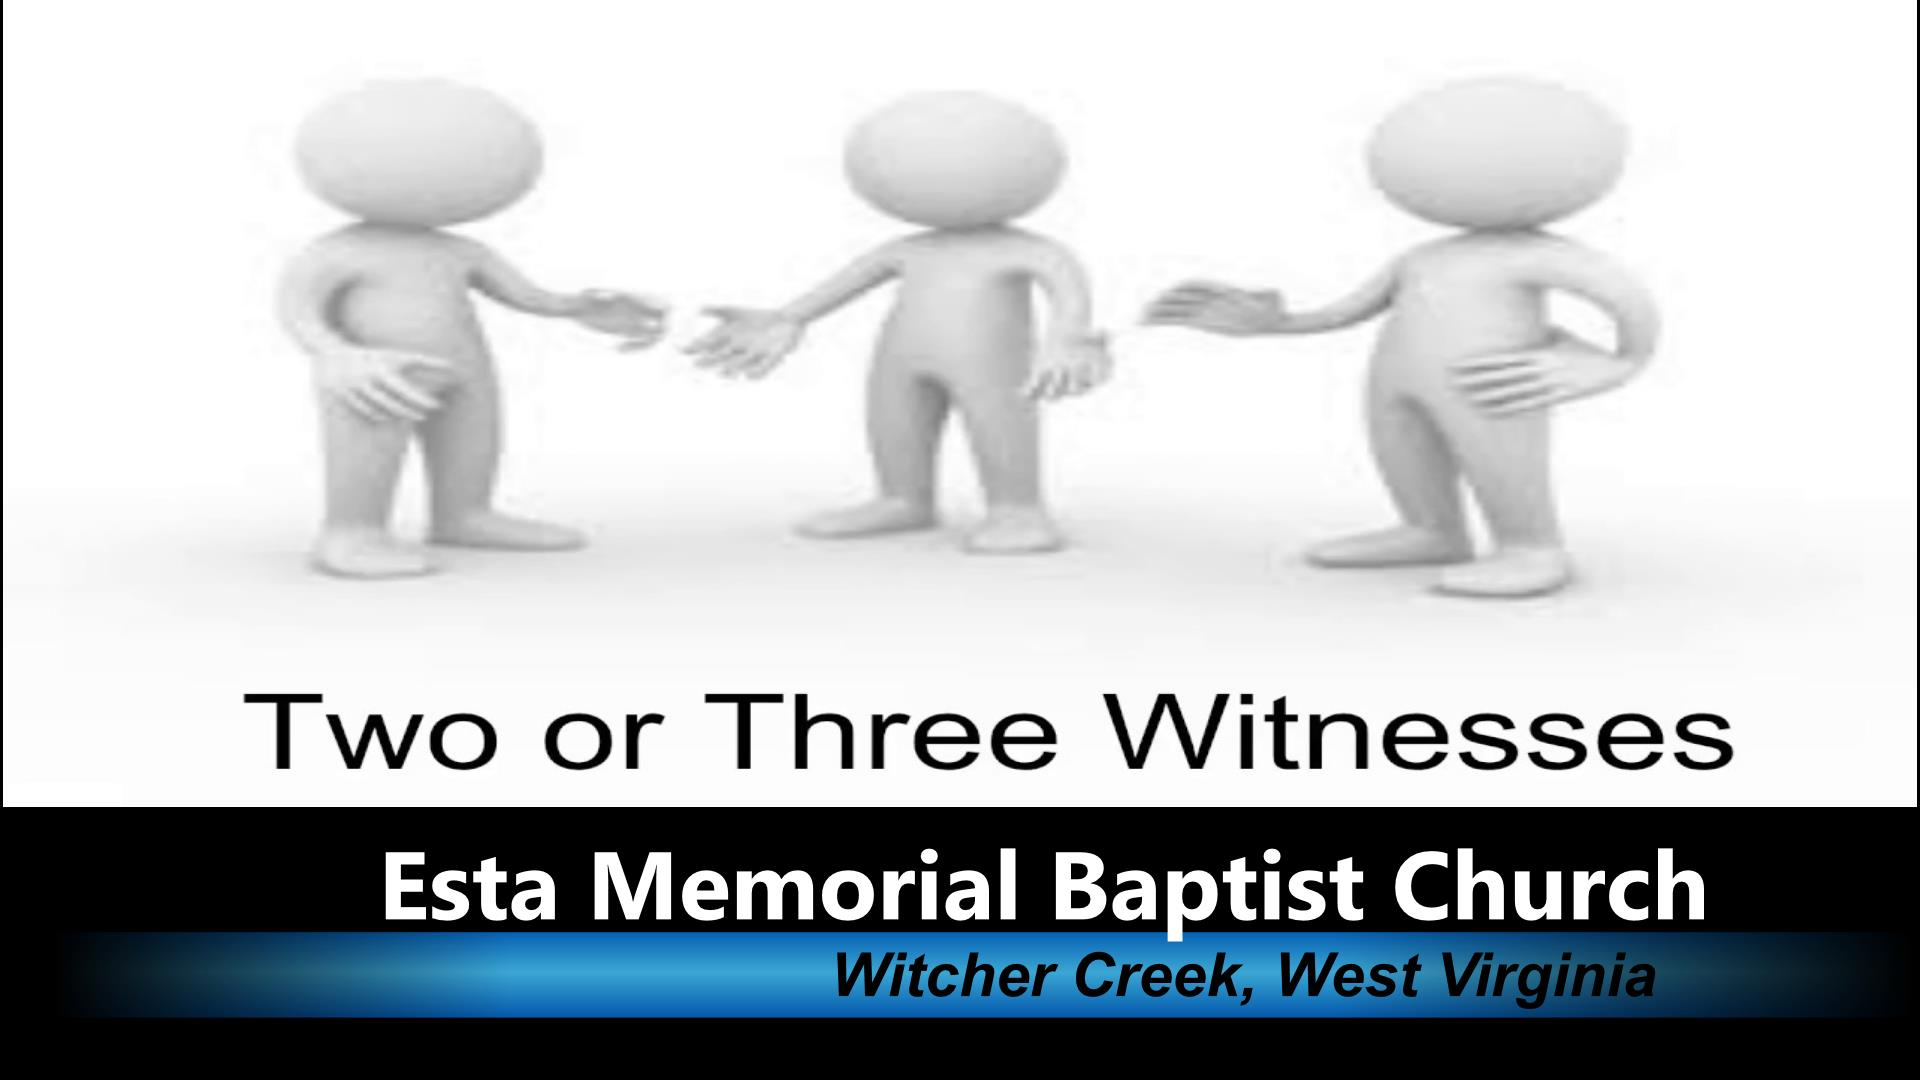 Two or Three Witnesses